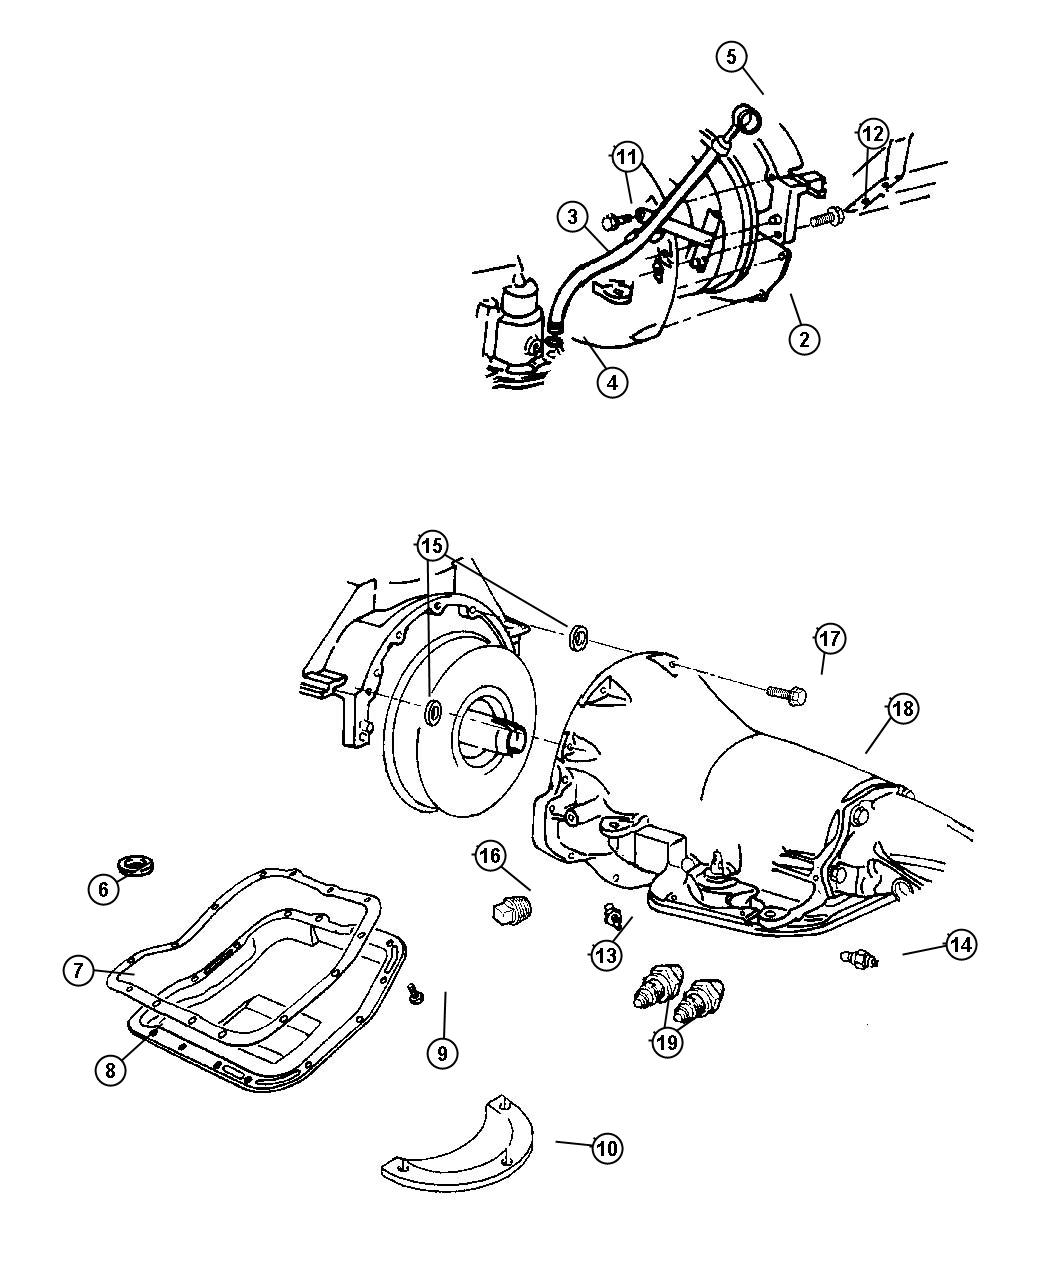 dodge 46re valve body diagram chrysler transmission parts